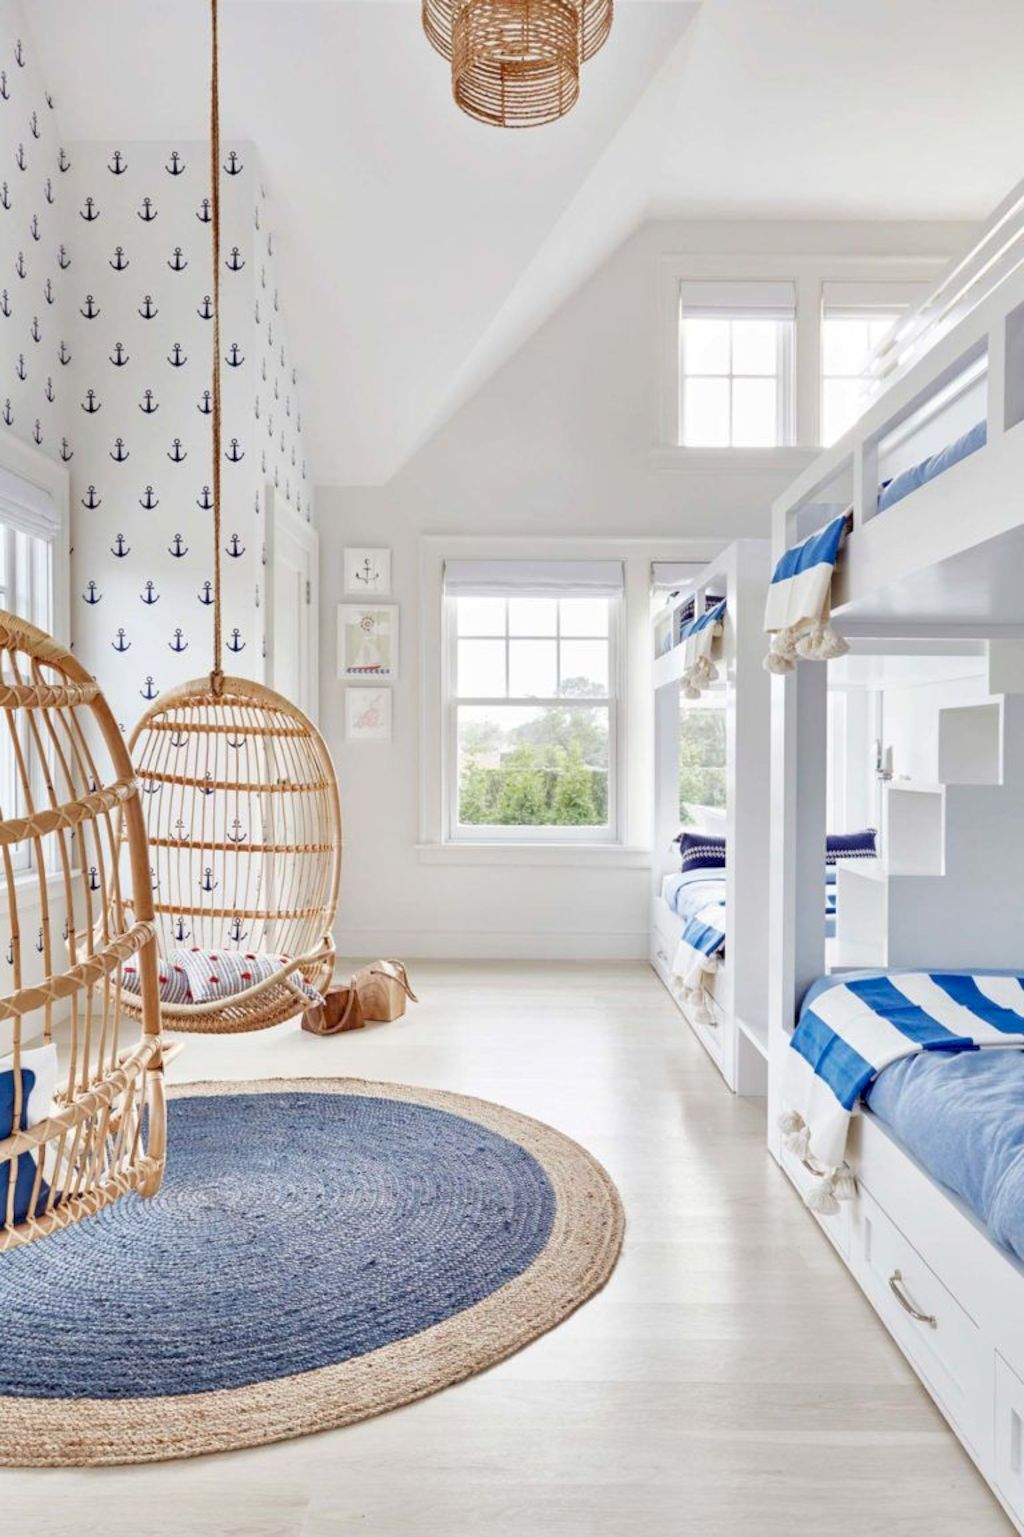 Refreshing home design with a coastal living theme and beach house style perfect inspirations for summer home updates Image 32